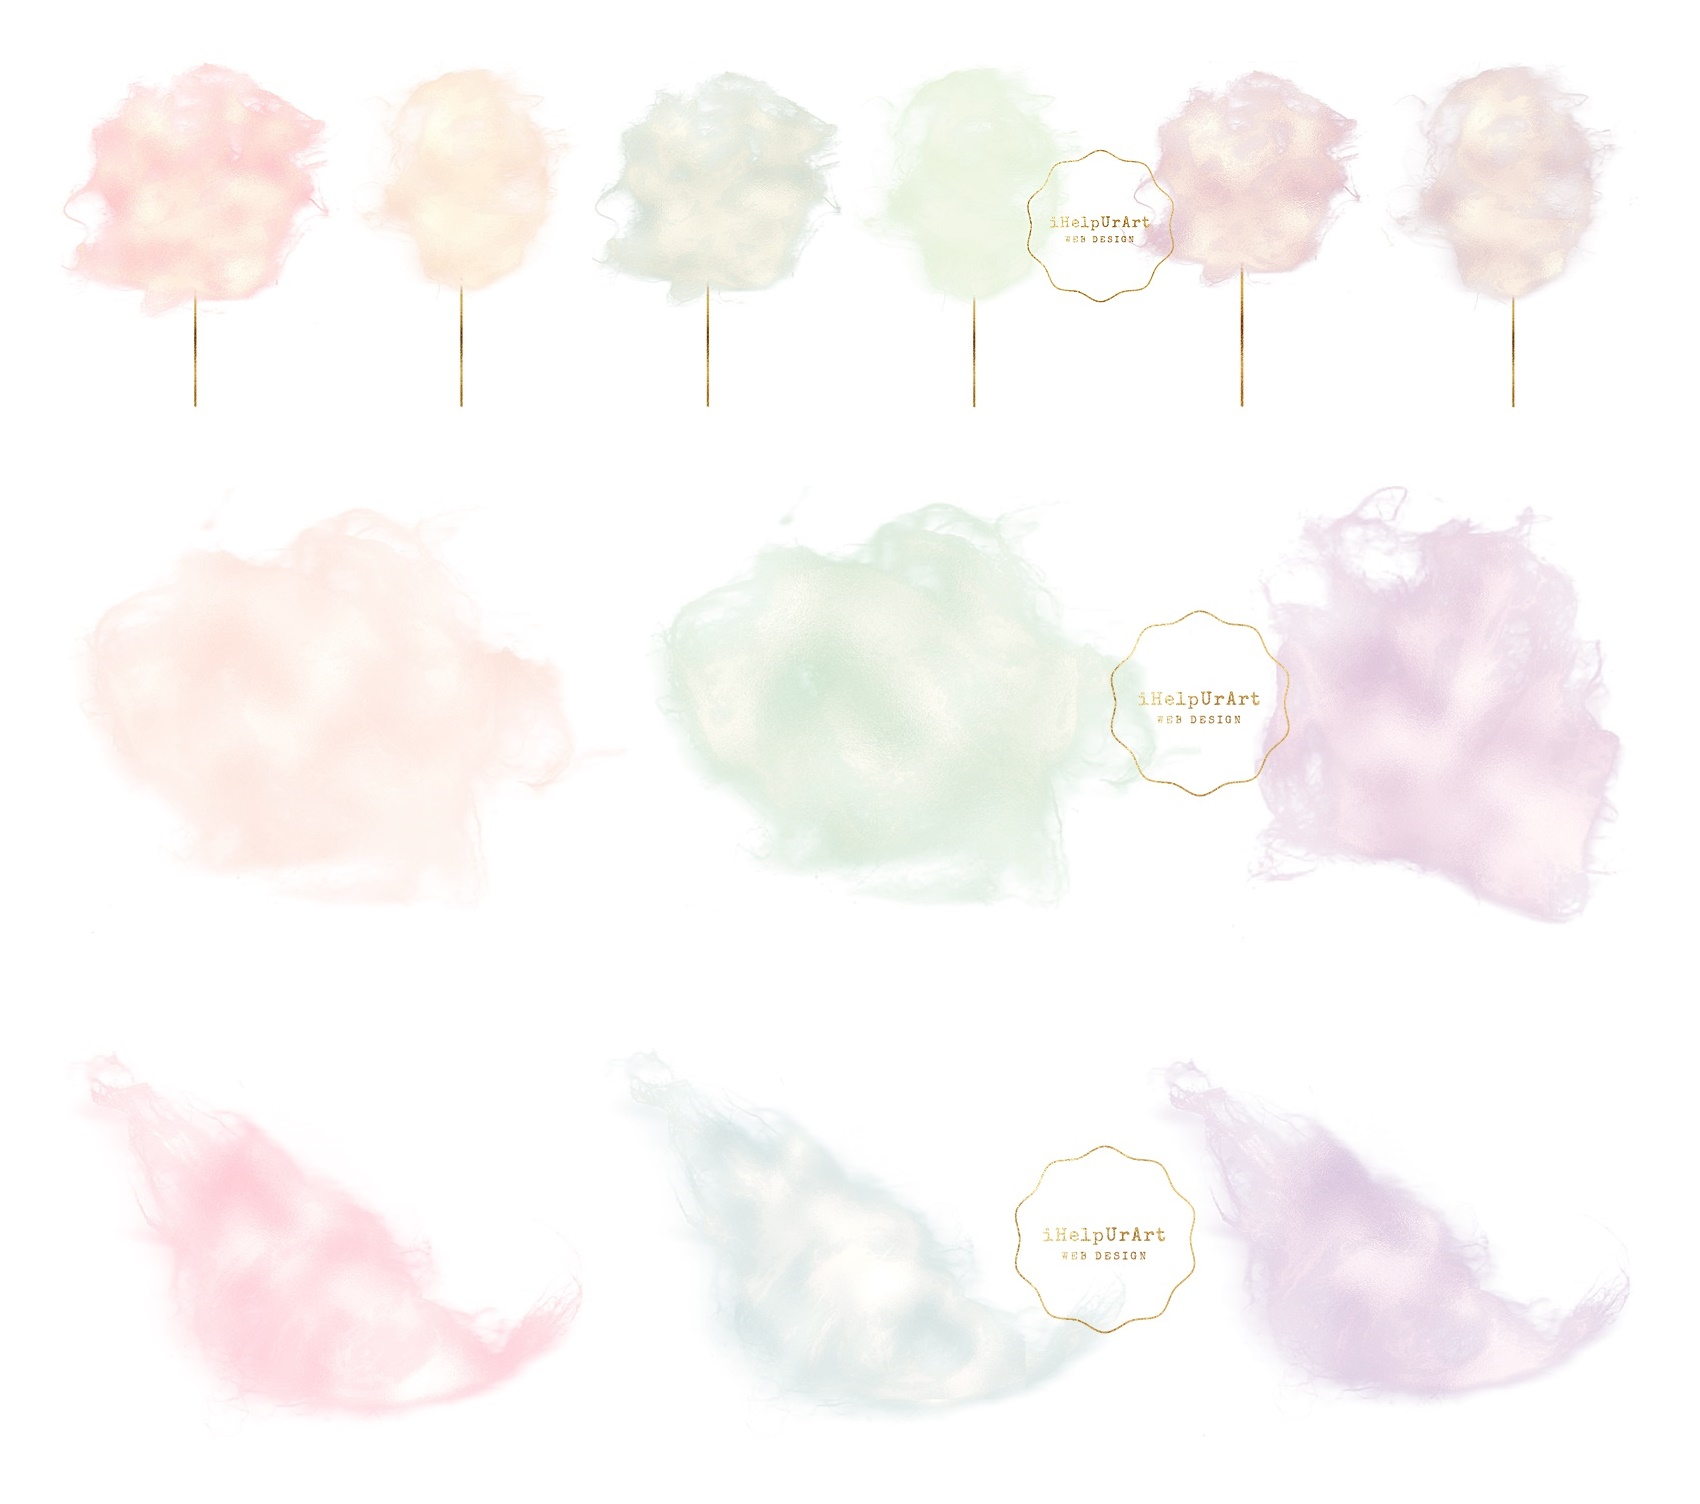 Cotton Candy Clipart example image 2